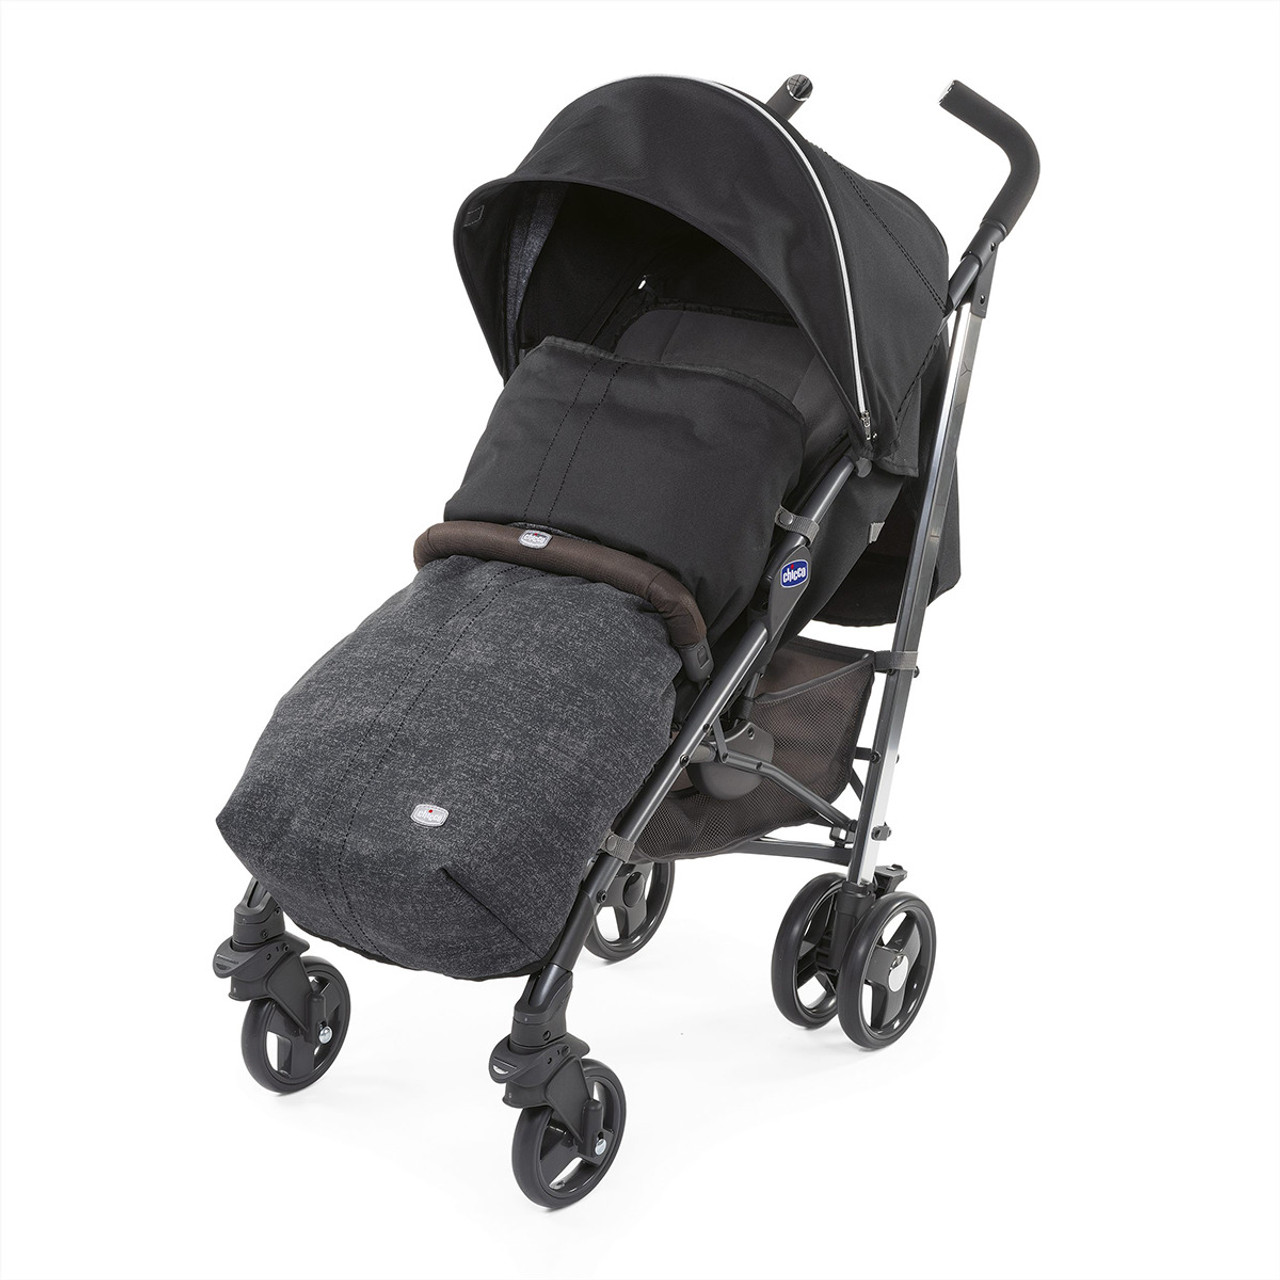 Chicco Liteway 3 Stroller Intrigue Eurobaby